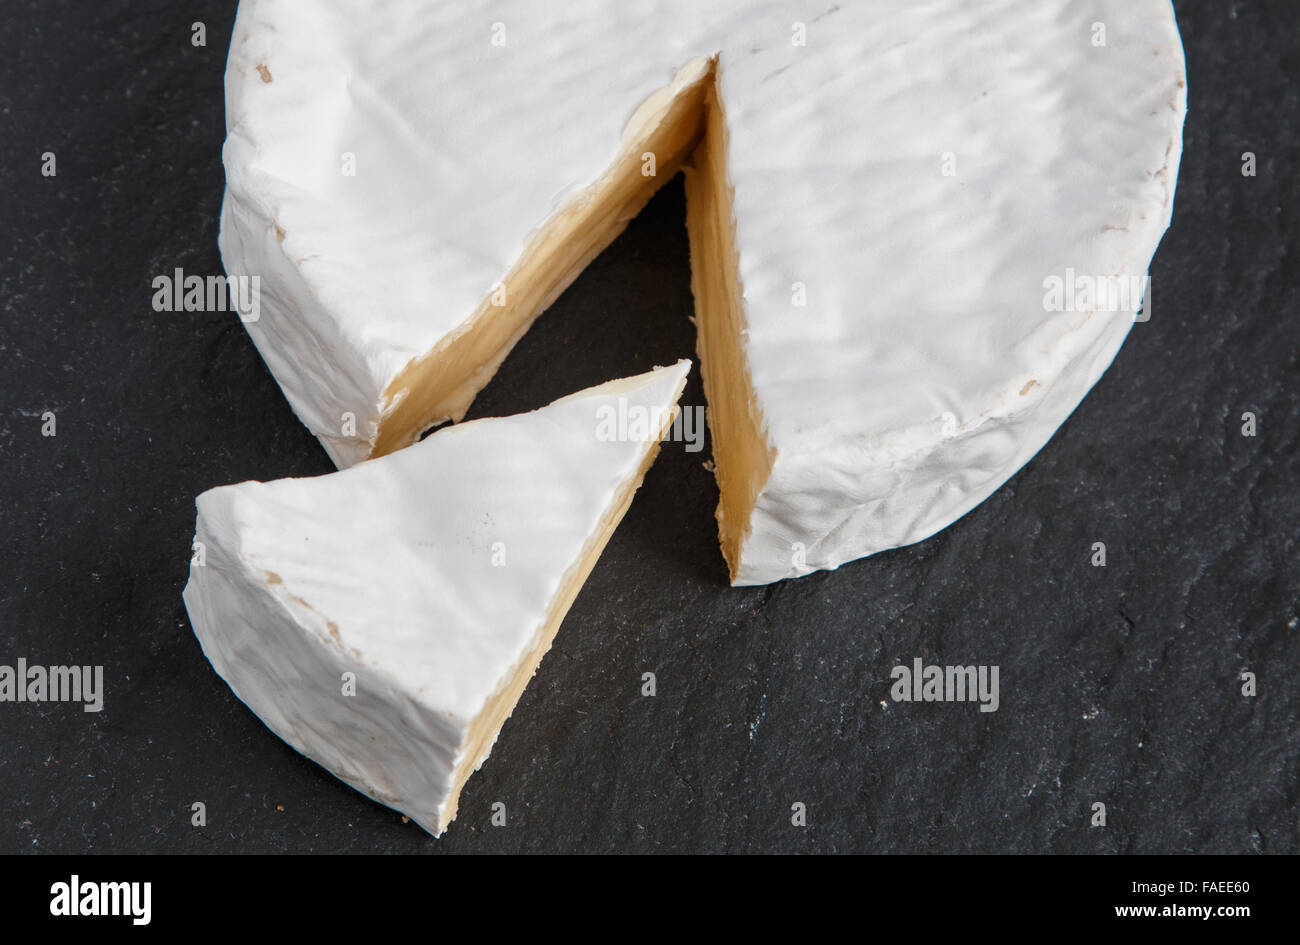 Segment of Brie cut from a whole English Brie cheese - Stock Image